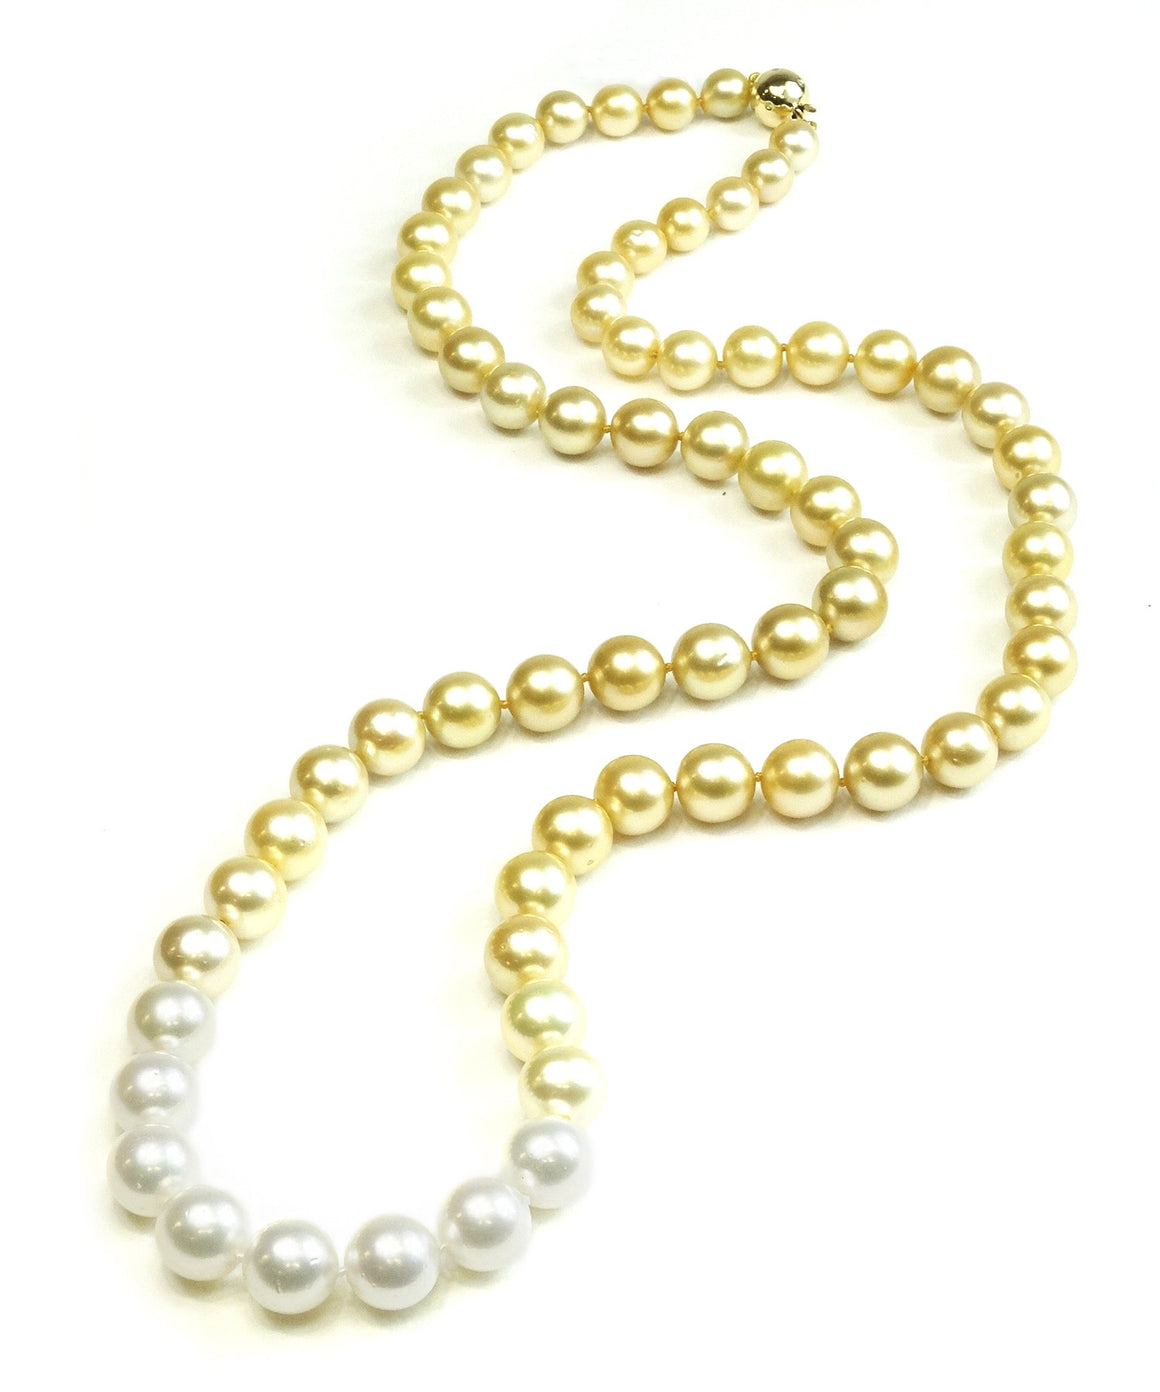 Ombré golden pearl necklace